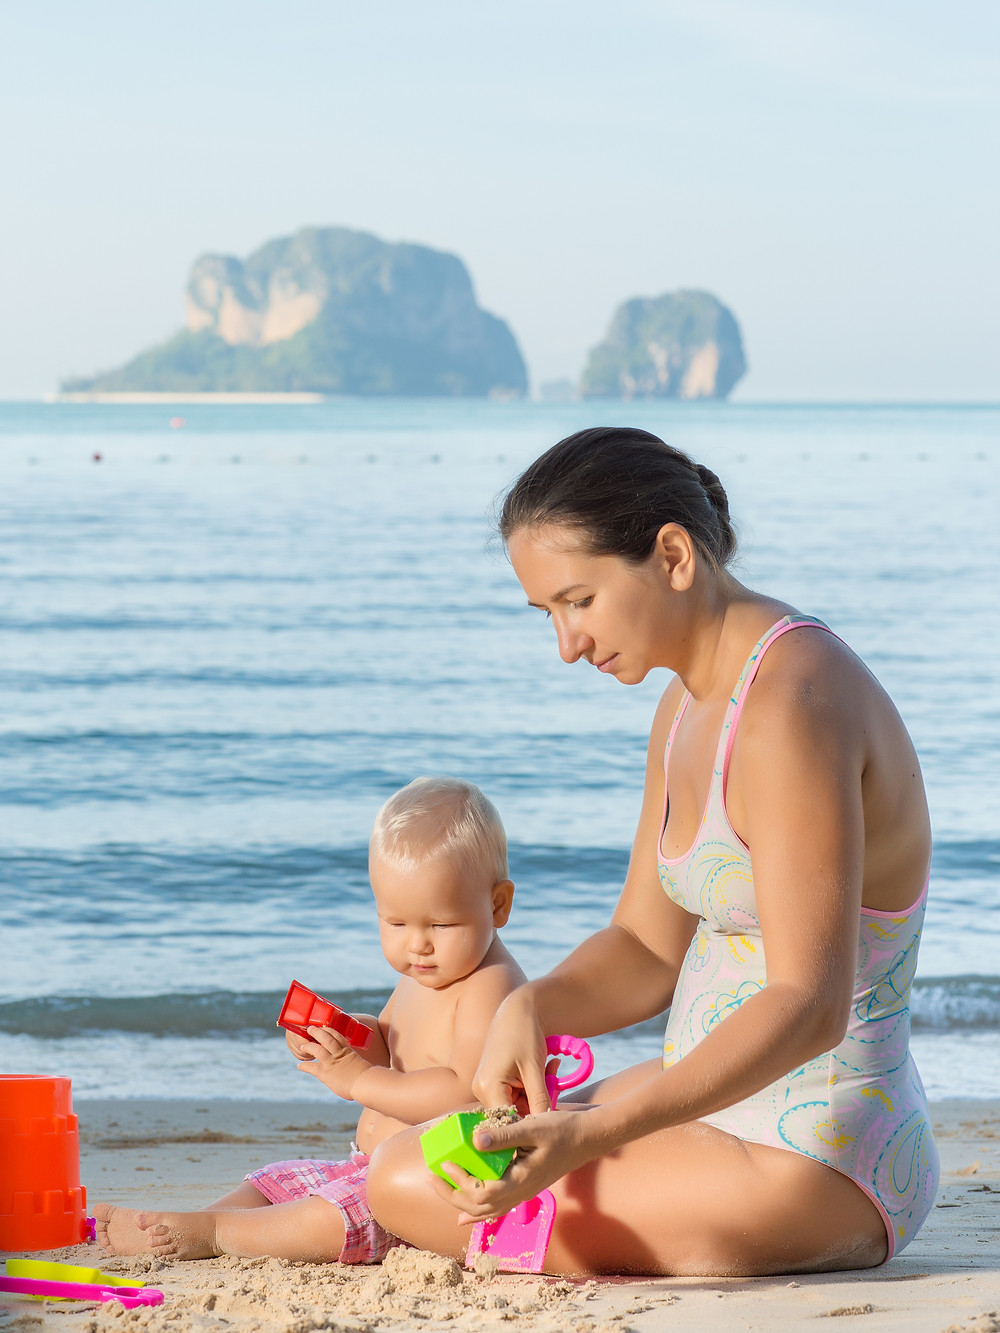 Baby and mom are playing beach toys.jpg